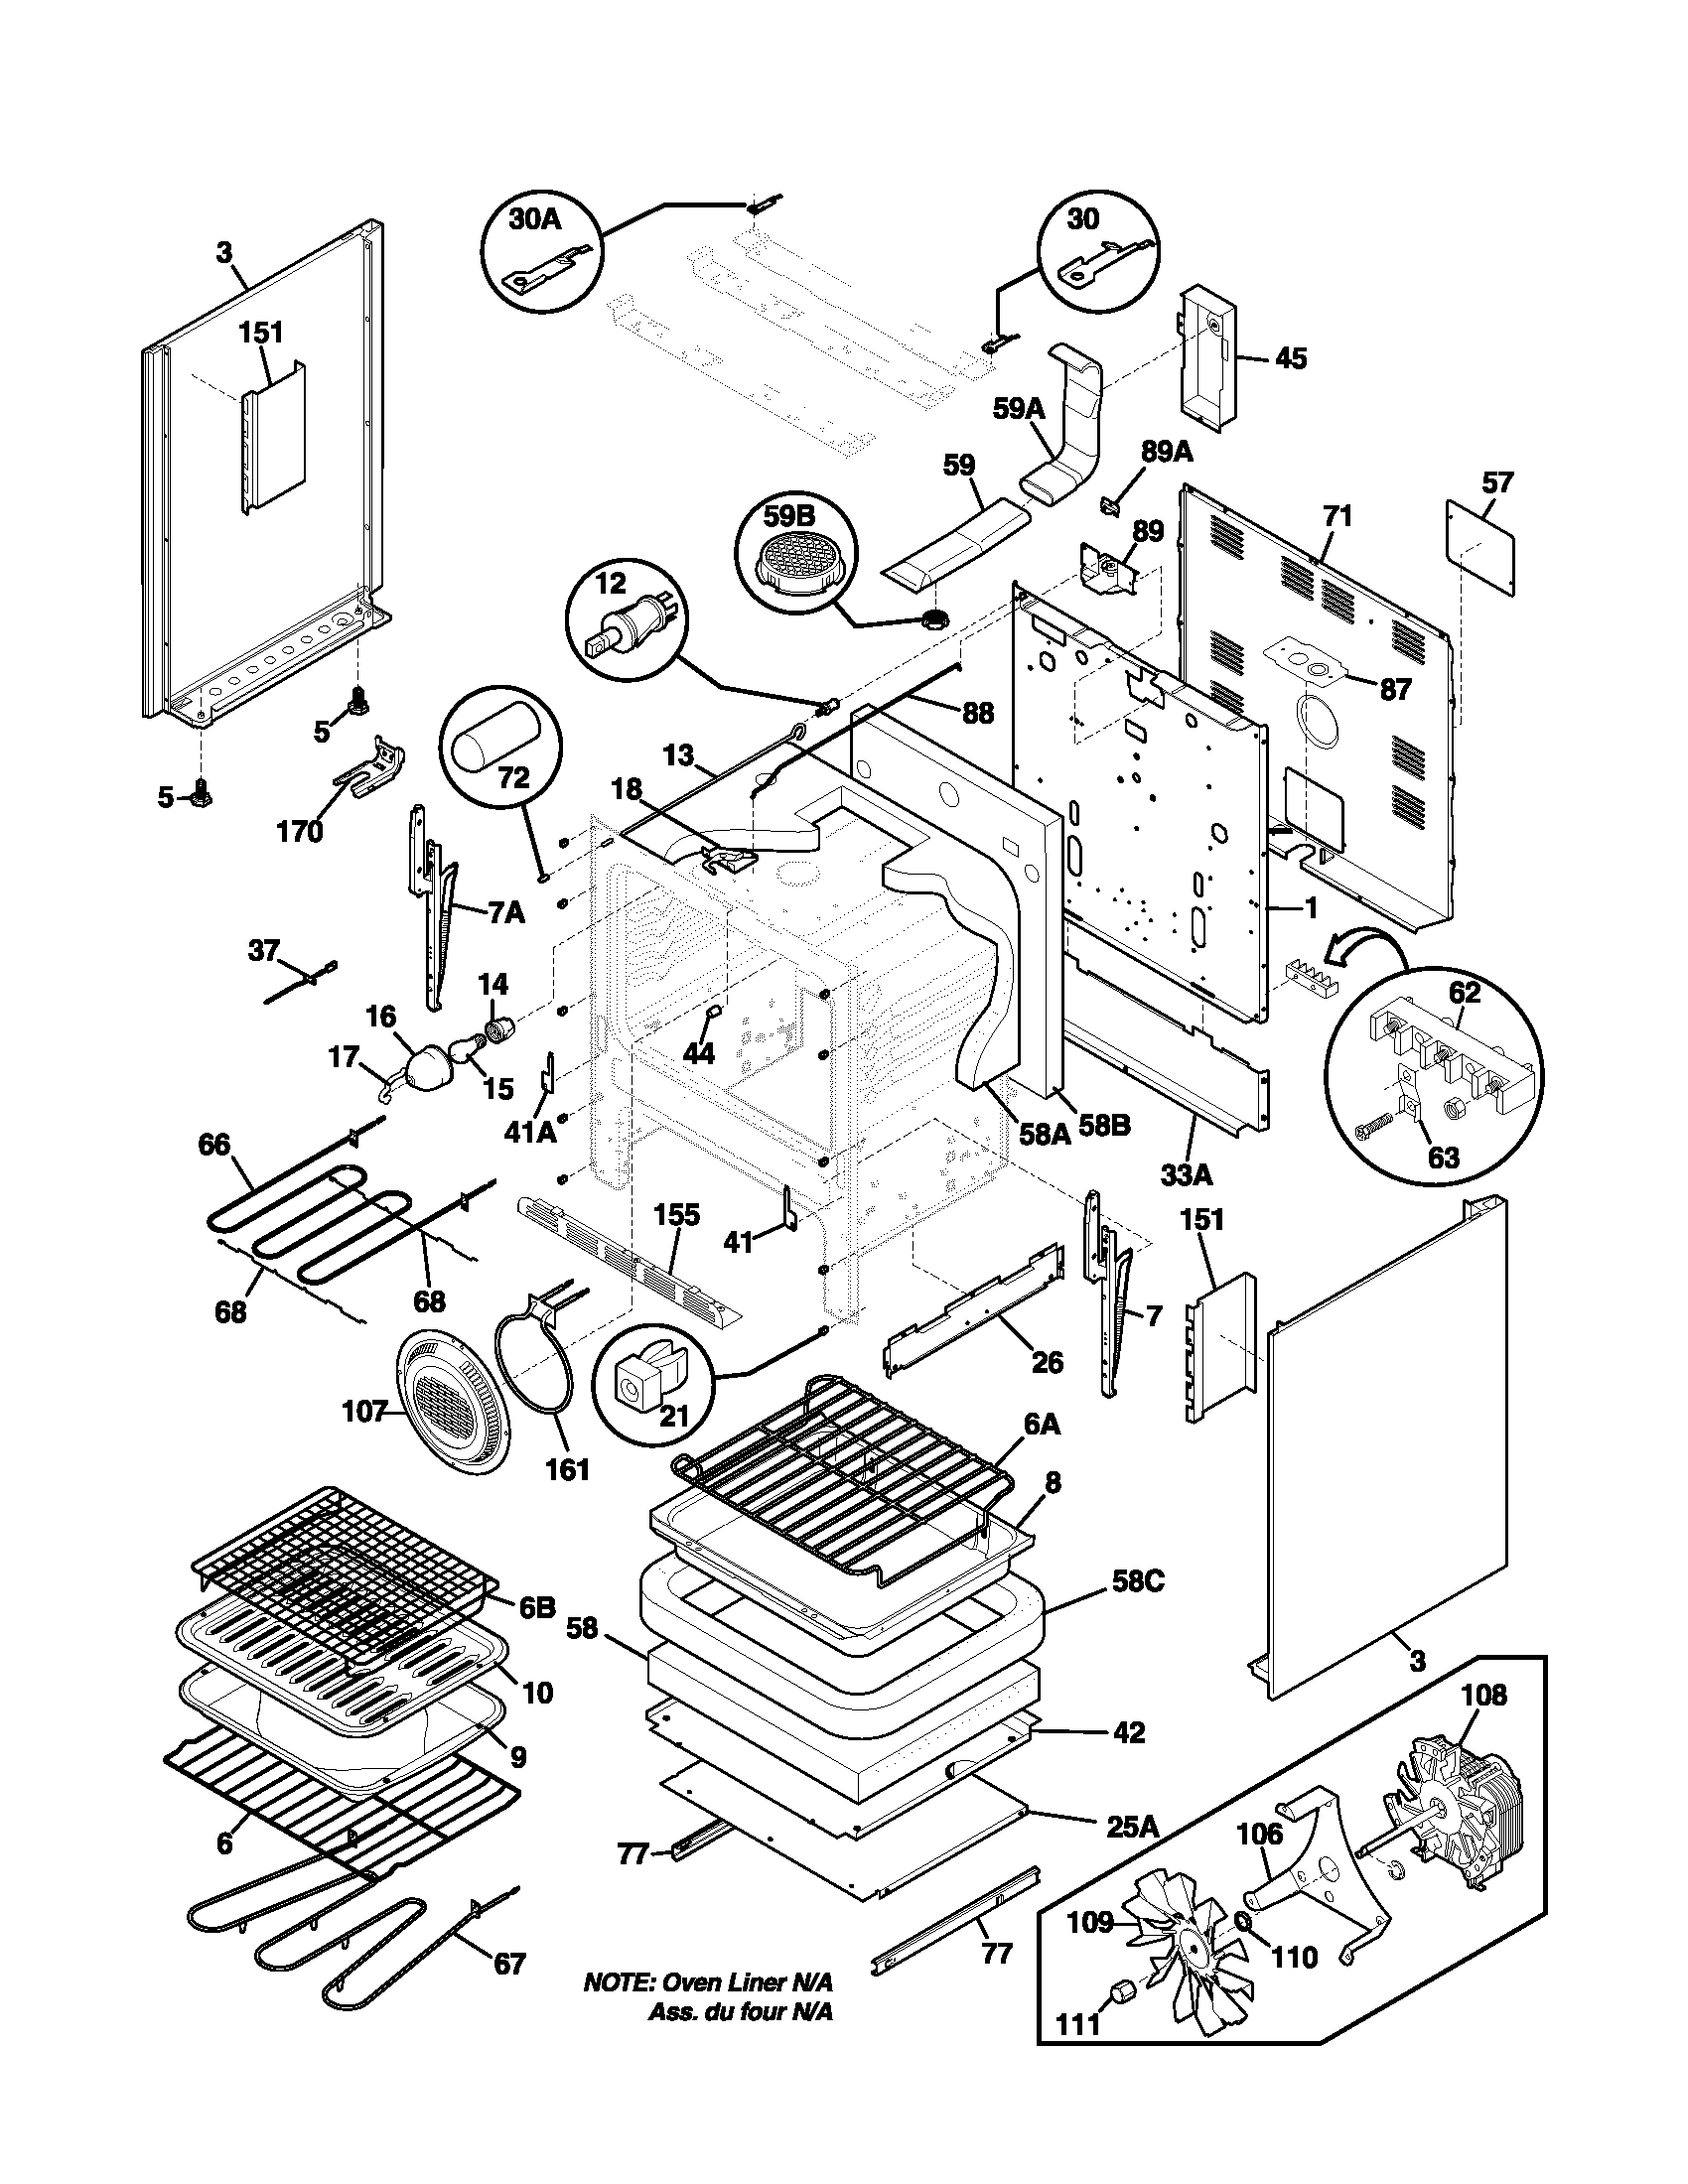 body parts?resize\\\=1700%2C2200\\\&ssl\\\=1 sample wiring diagrams appliance aid on whirlpool dishwasher frigidaire dishwasher wiring diagram at gsmx.co